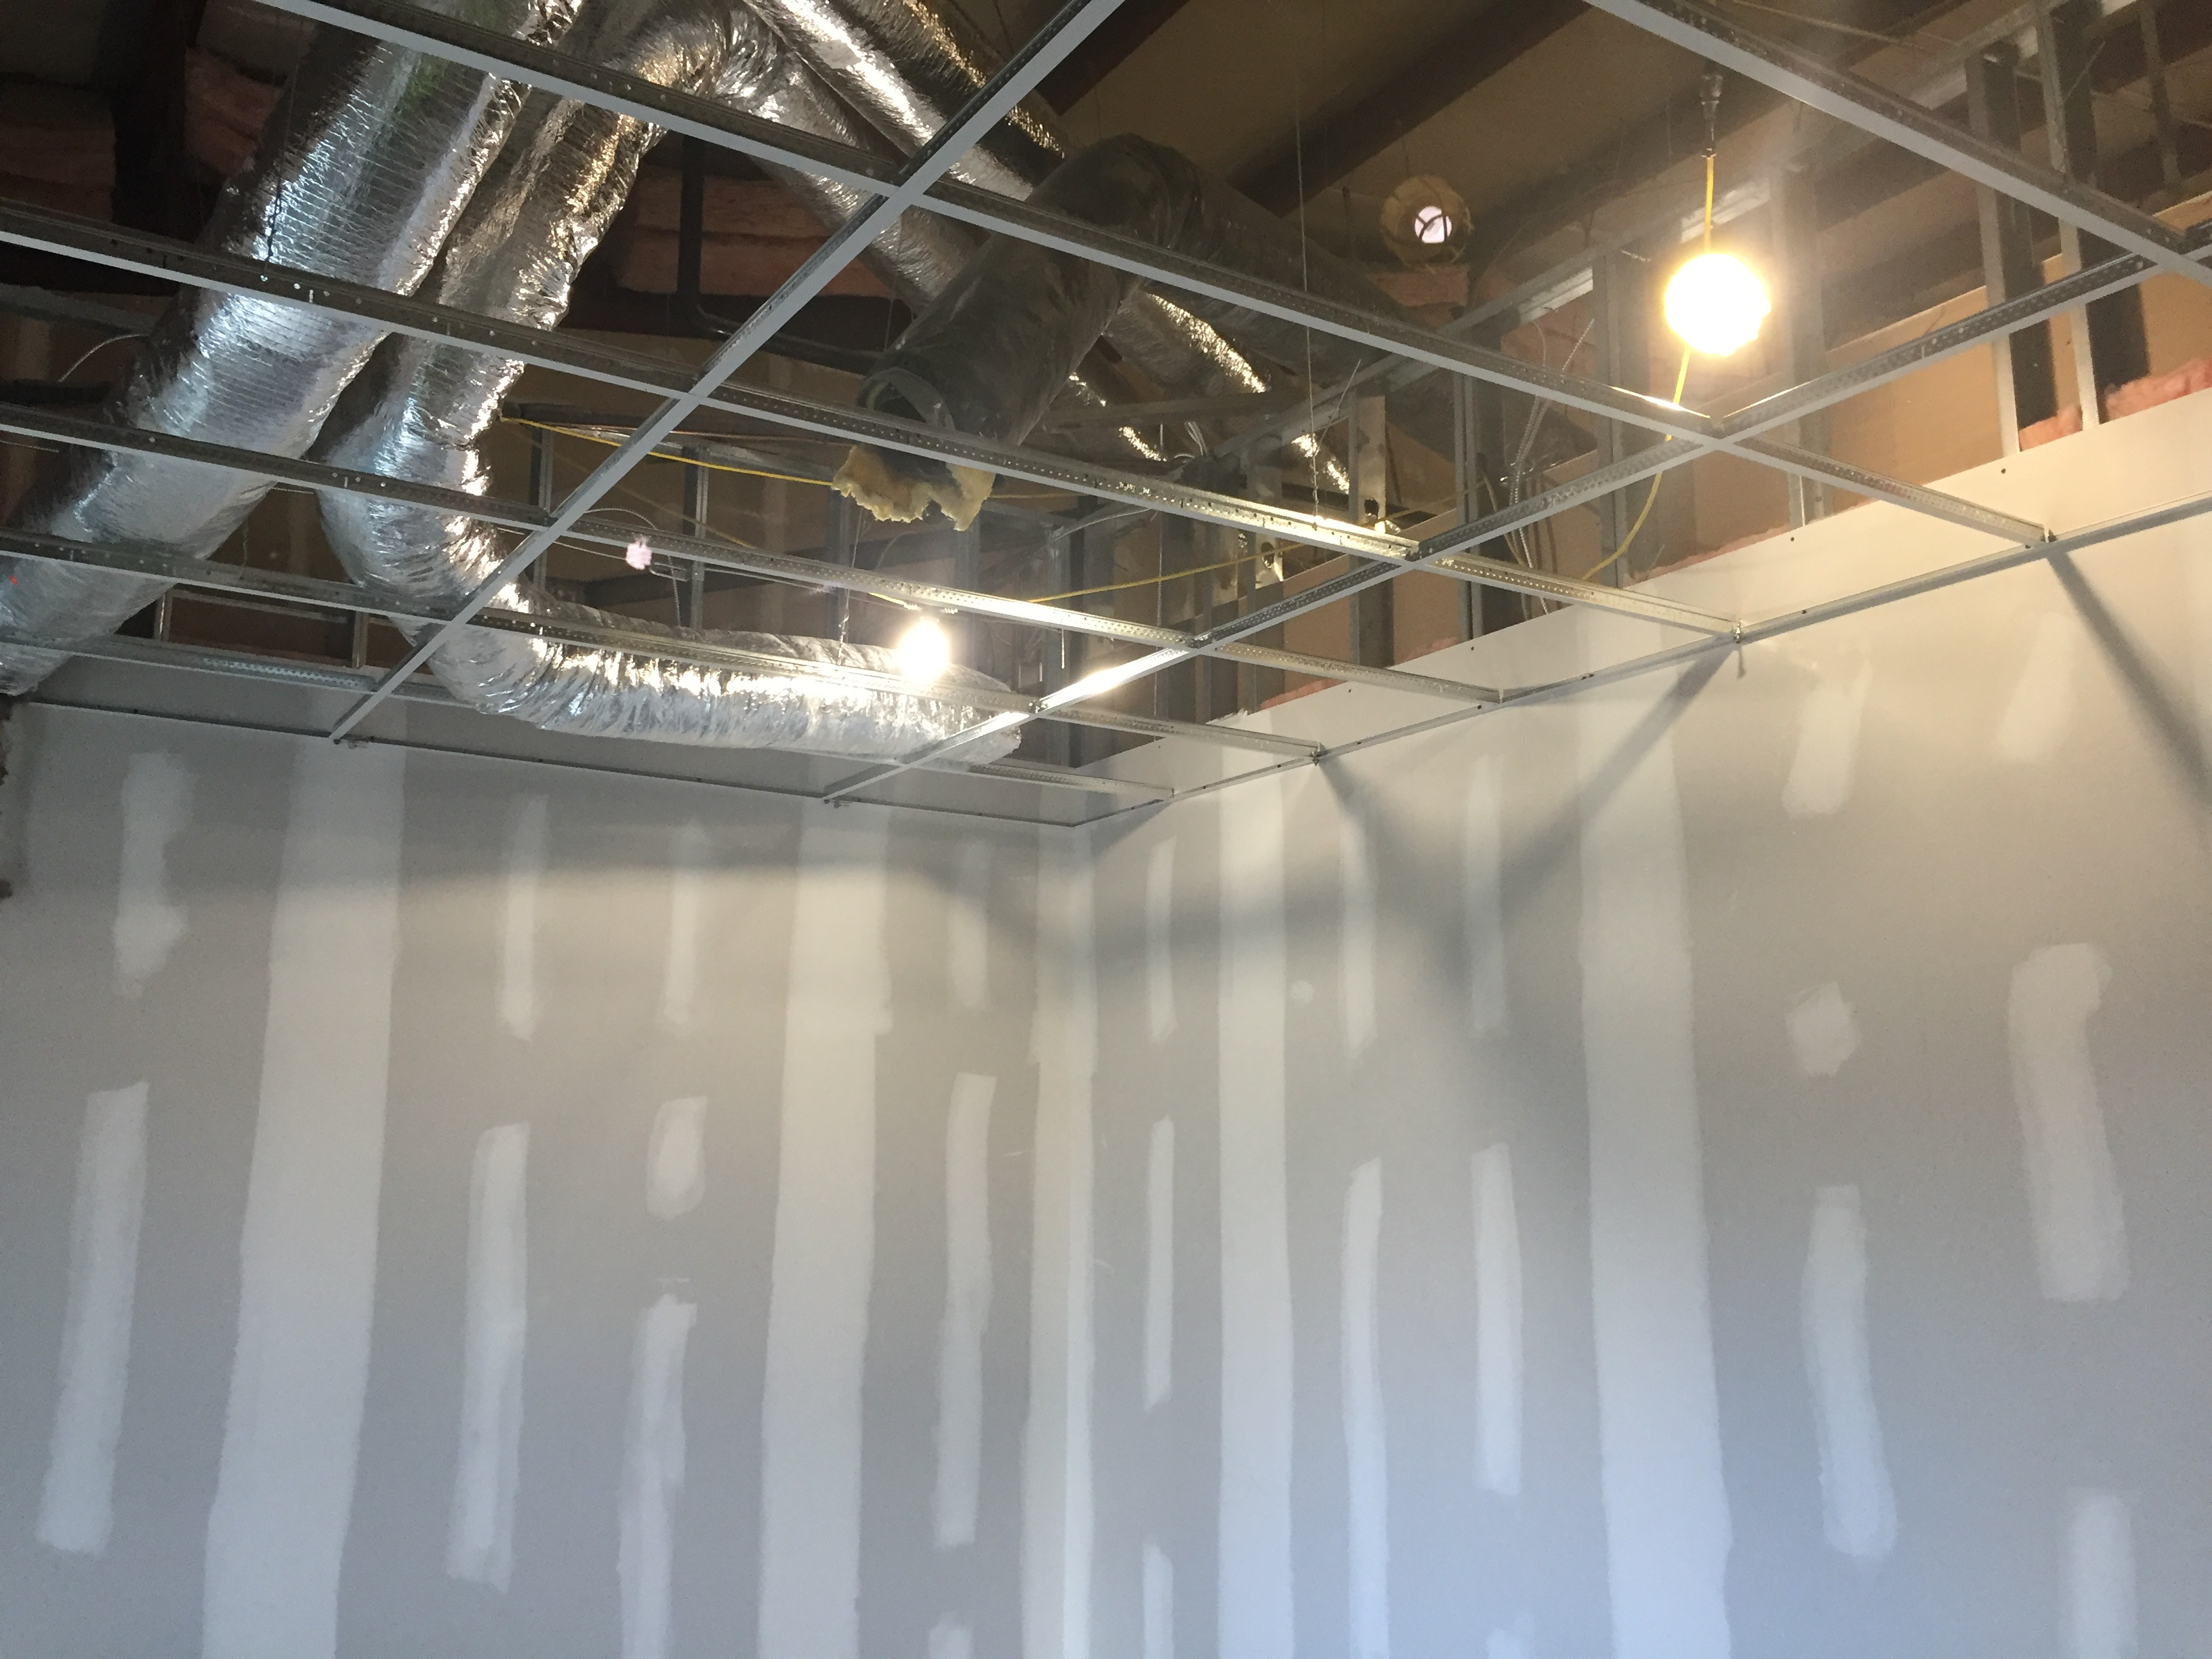 Drywall and Acoustical Tile Ceilings